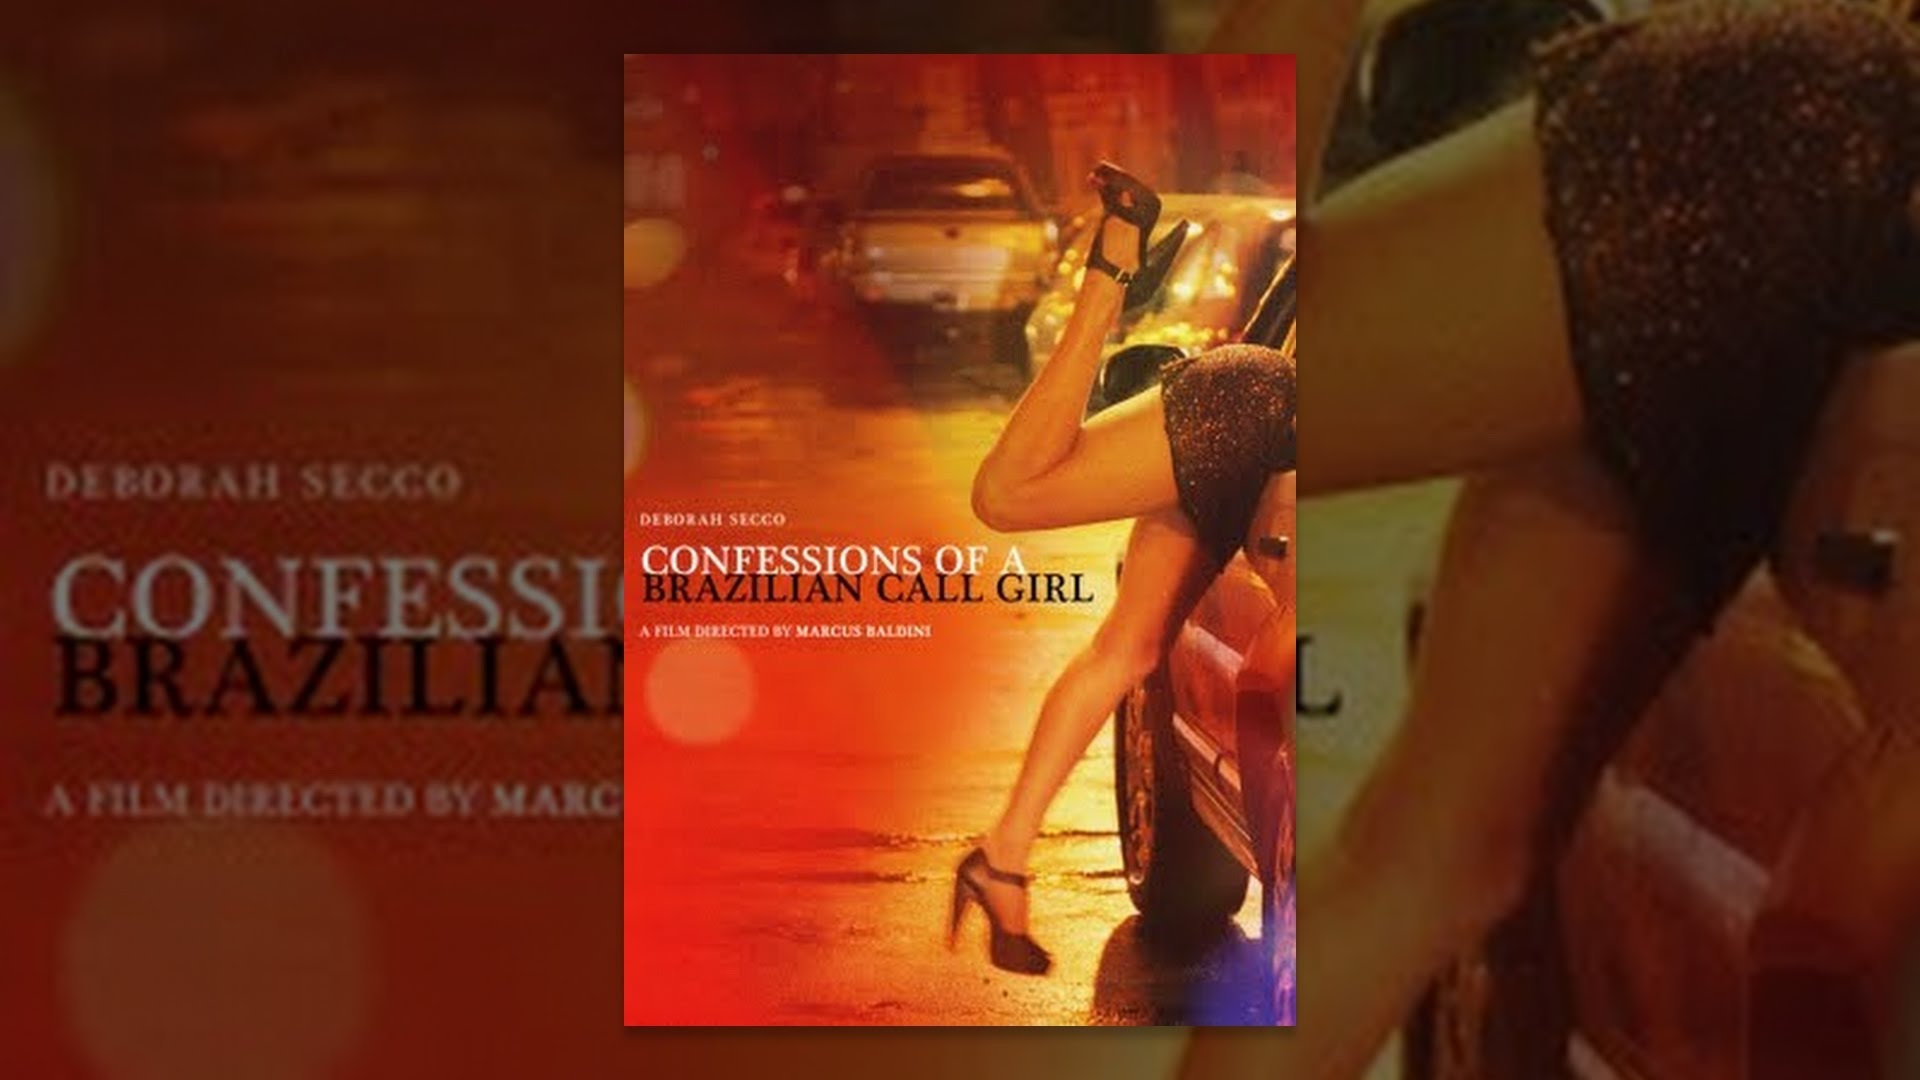 Confessions of a brazilian call girl cast